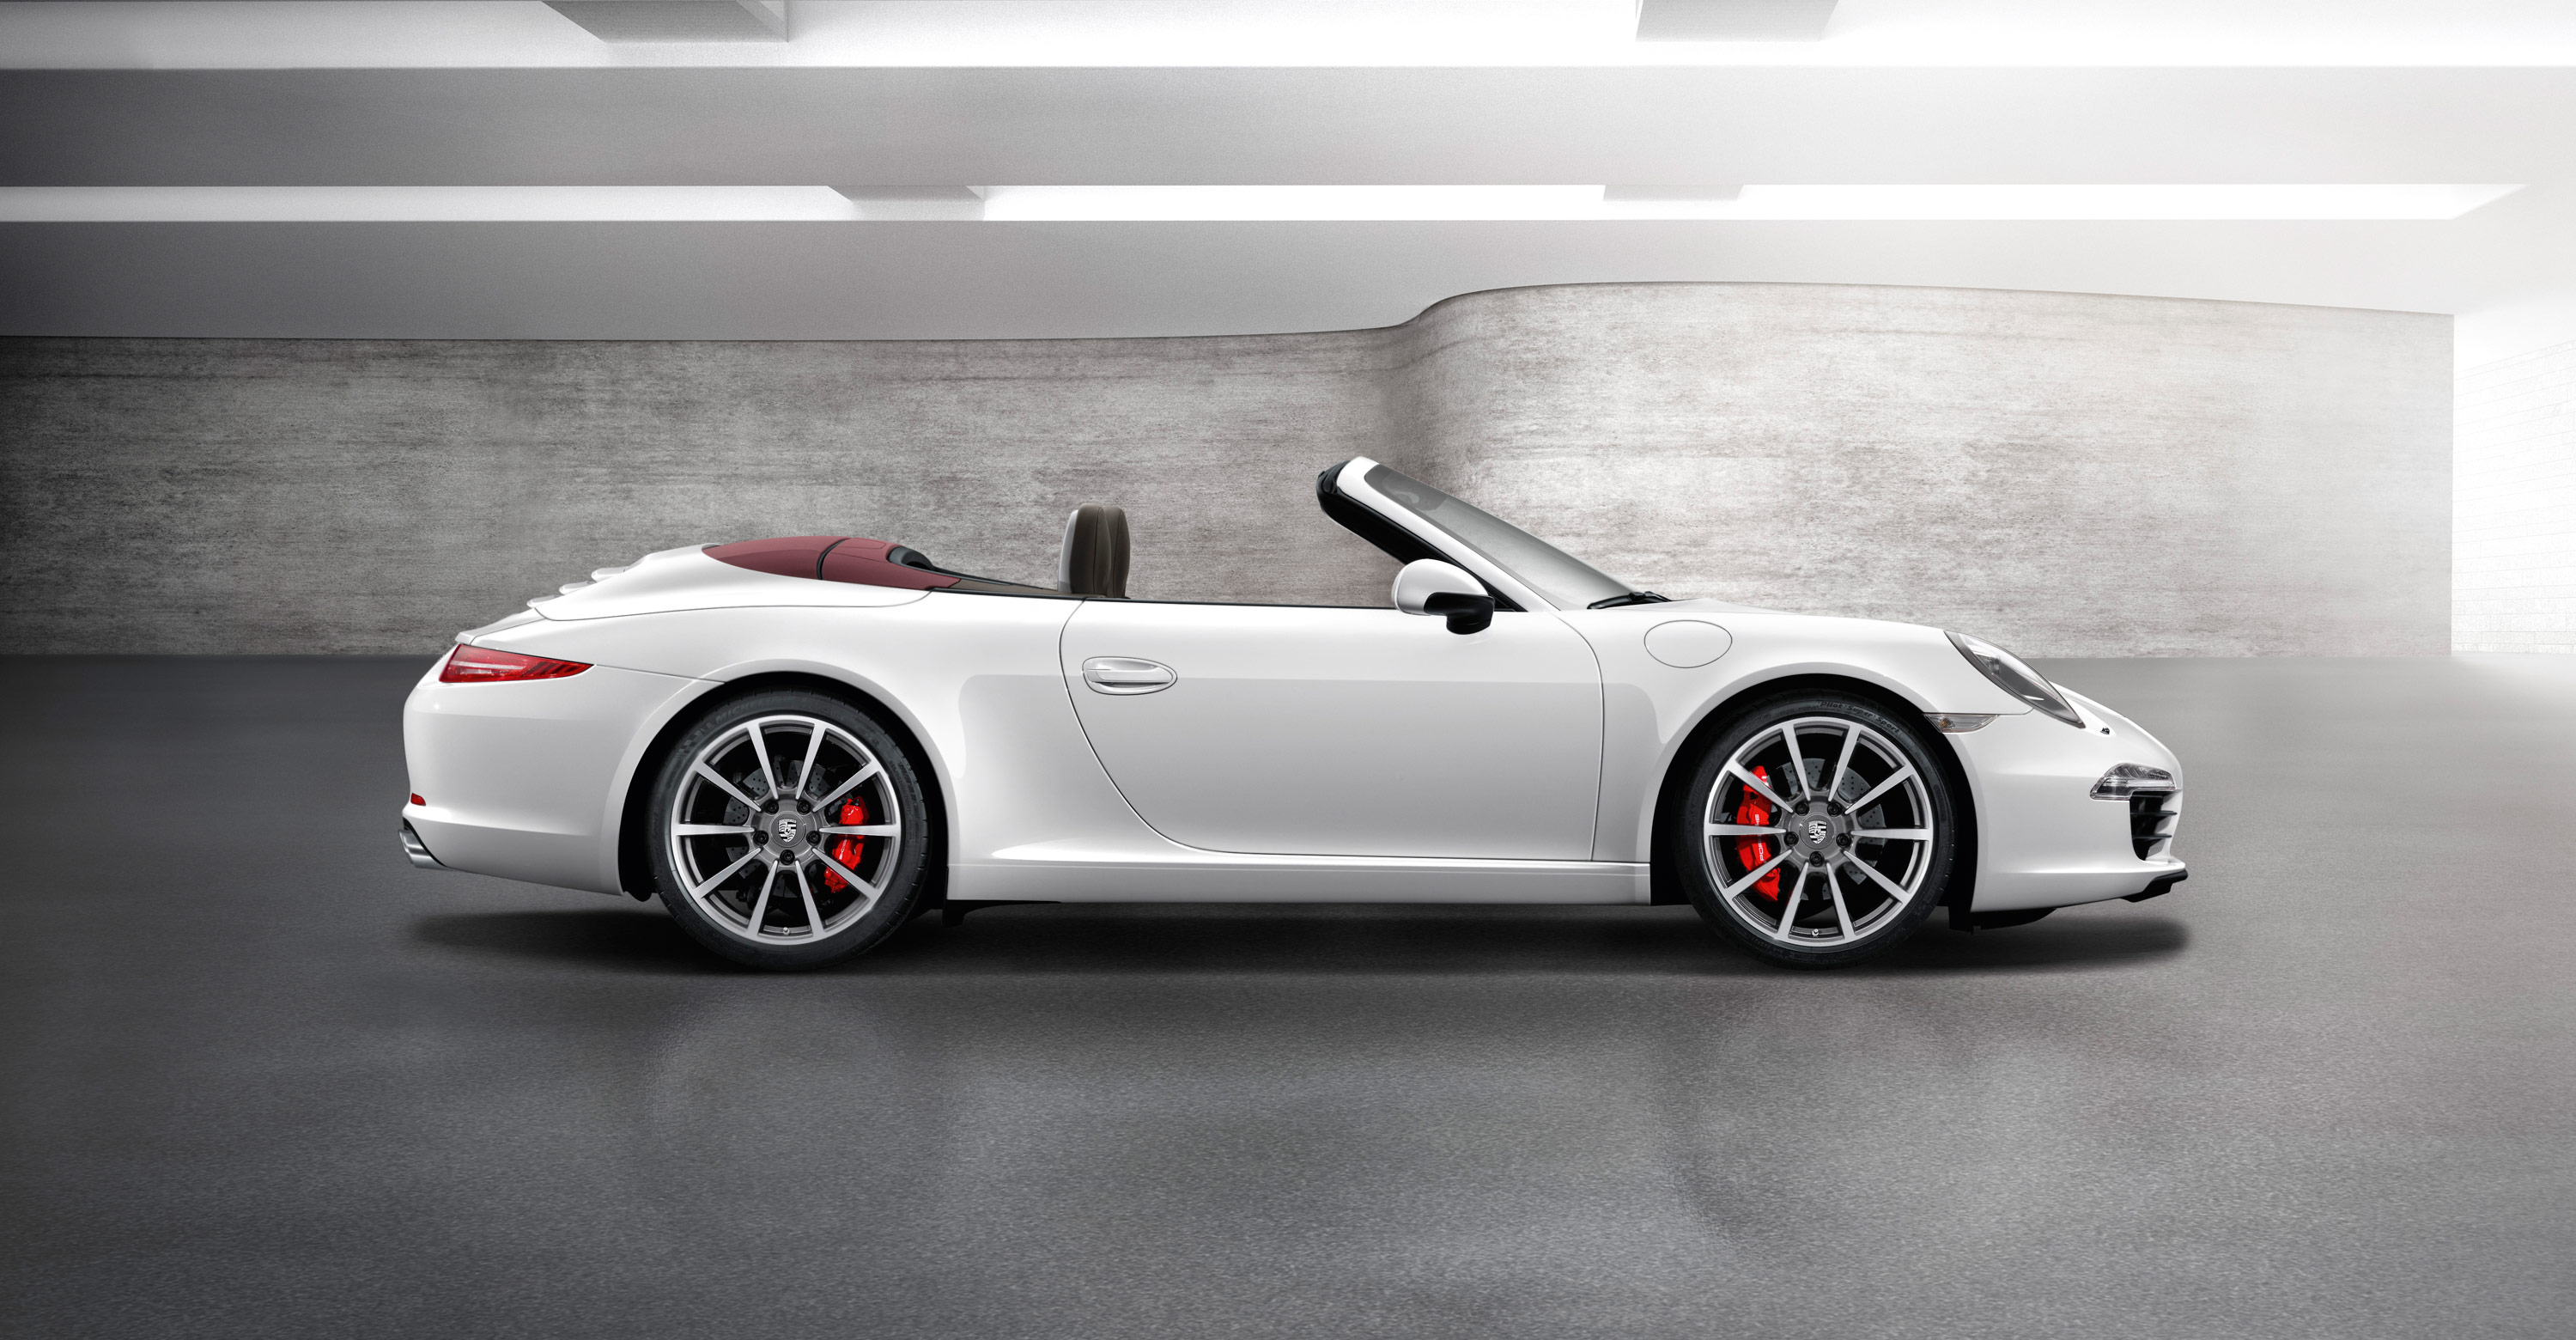 2012 porsche 911 carrera s cabriolet. Black Bedroom Furniture Sets. Home Design Ideas